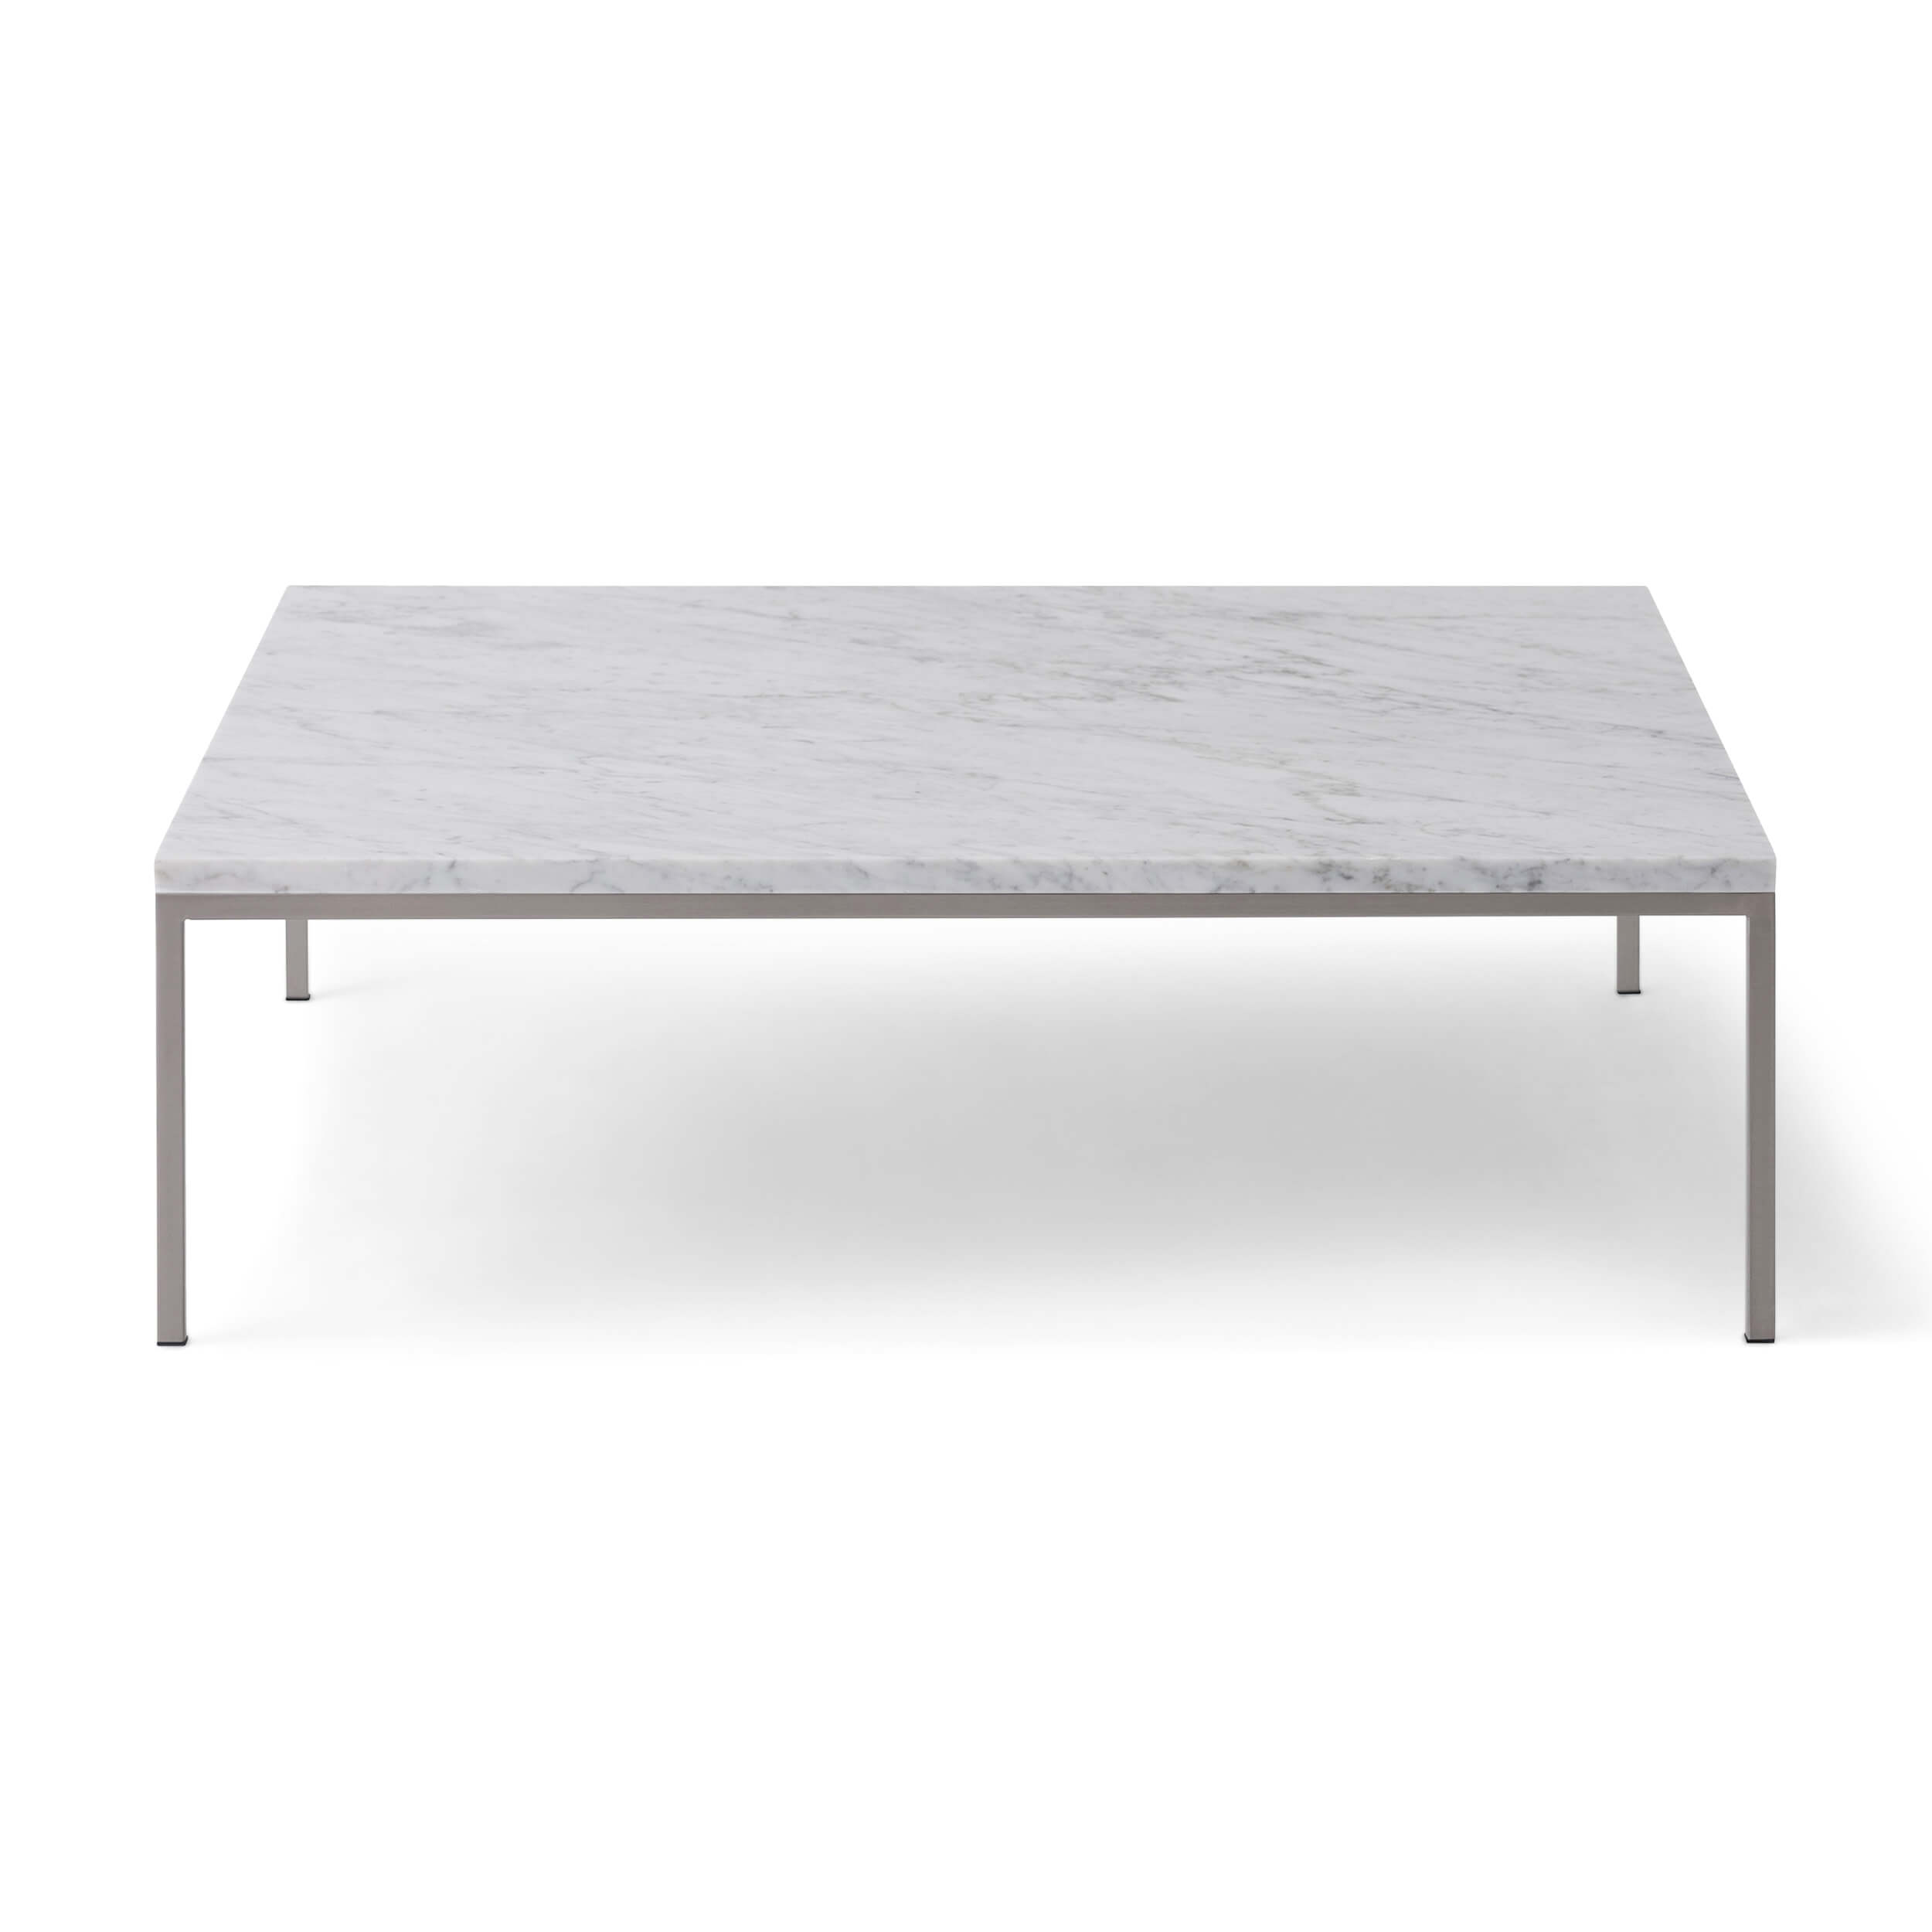 Glass And Metal Square Coffee Table In Black W 80cm: Custom Square Coffee Table